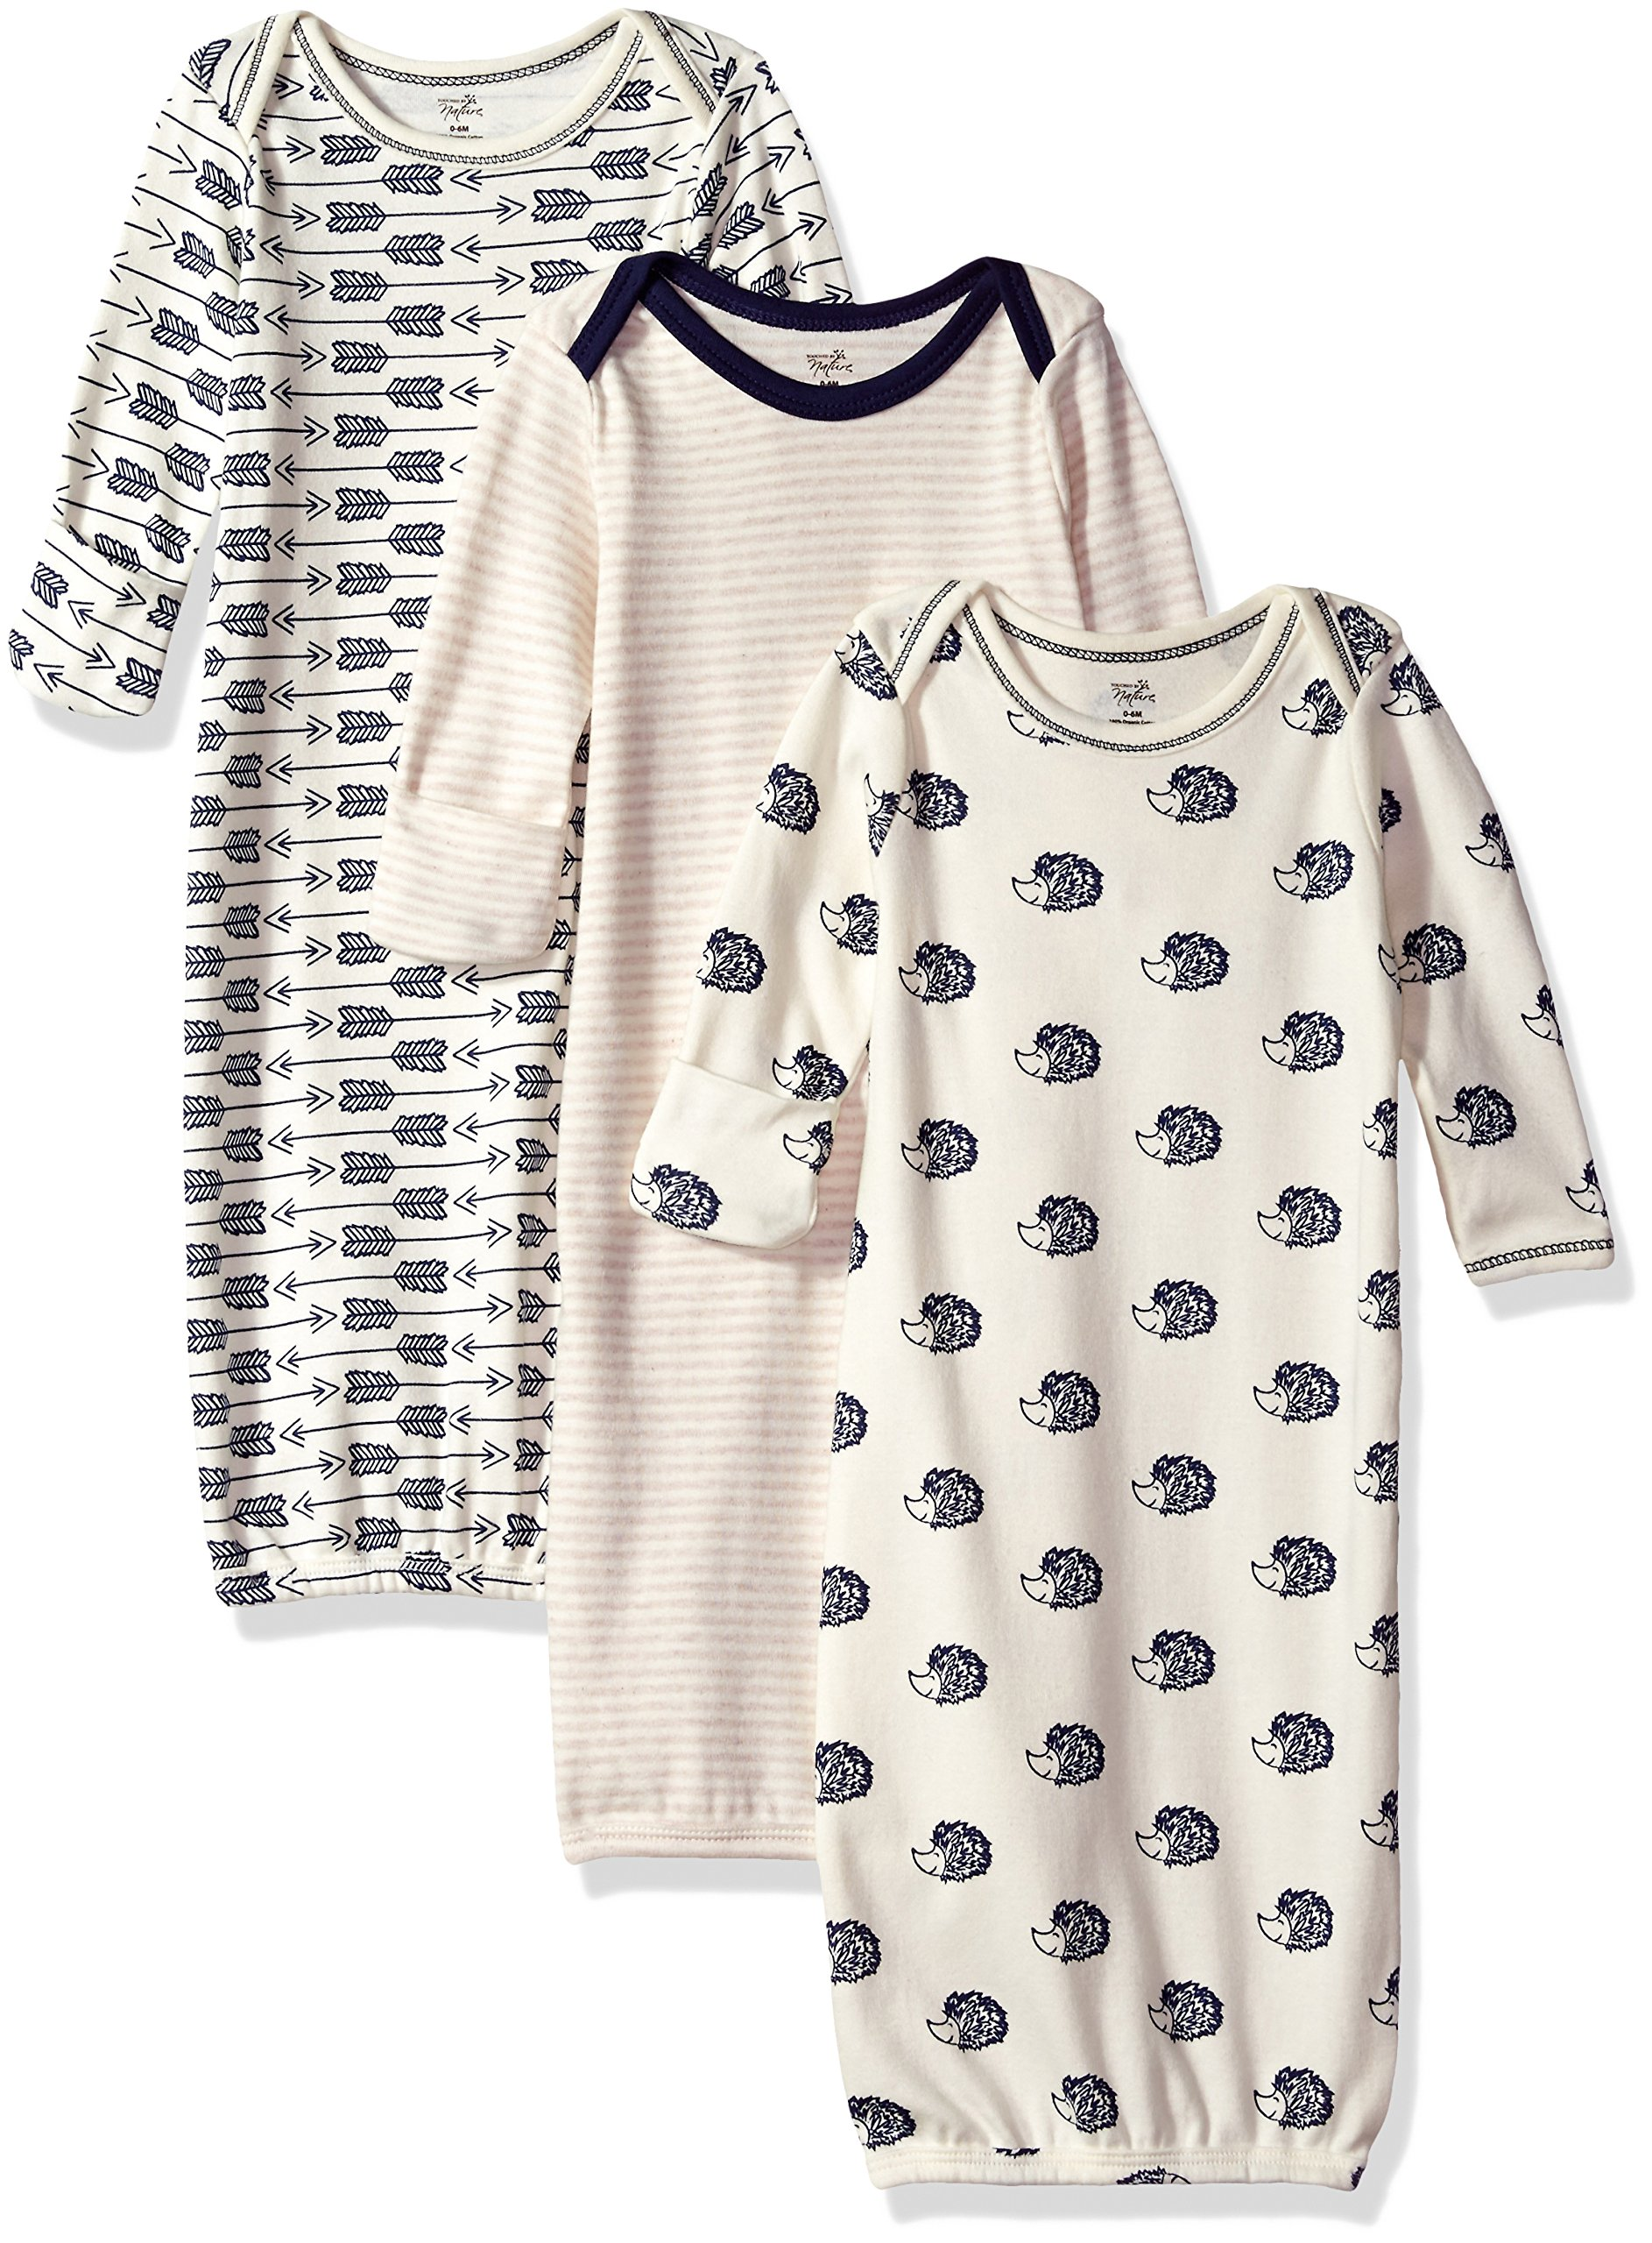 Touched by Nature Baby Organic Cotton Gowns, Hedgehog 3-Pack, 0-6 Months by Touched by Nature